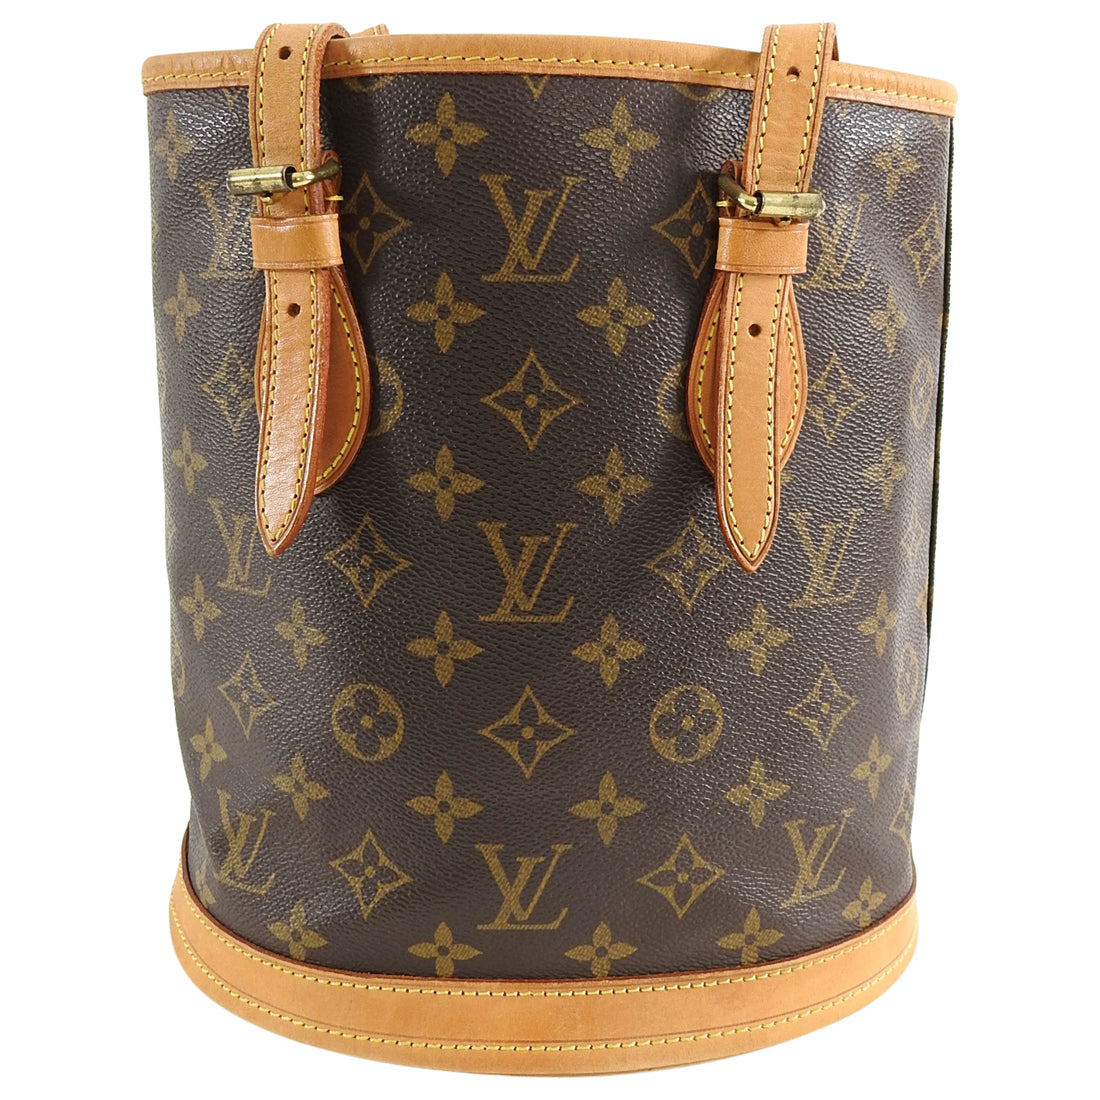 Louis Vuitton Monogram Petit Bucket Small Tote Bag